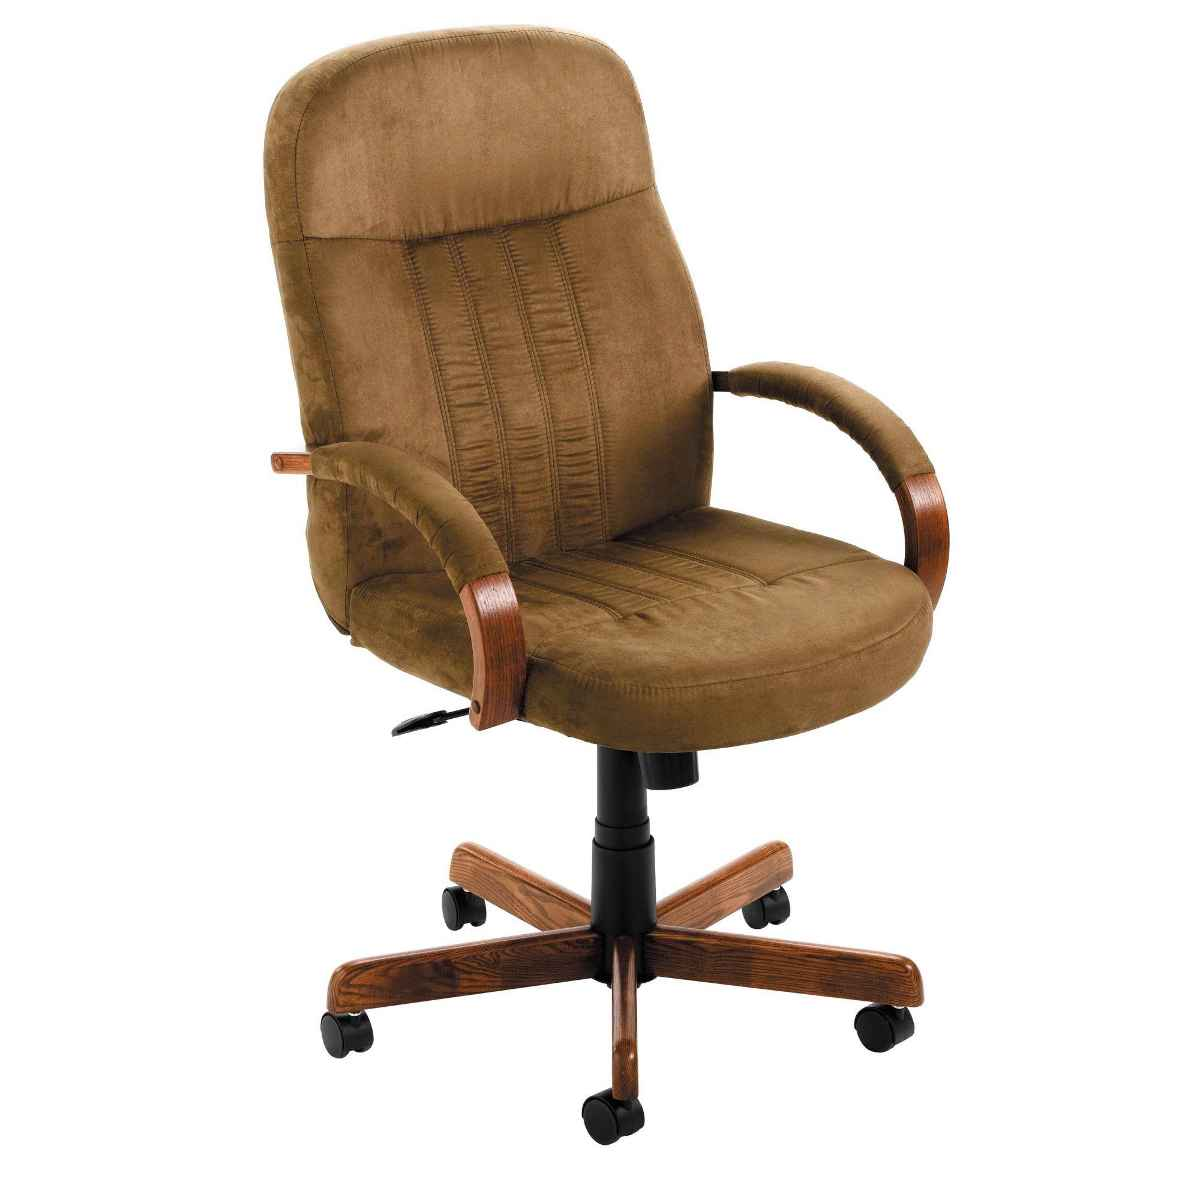 Microfiber Office Chair Microfiber Office Chair For Elegant Look